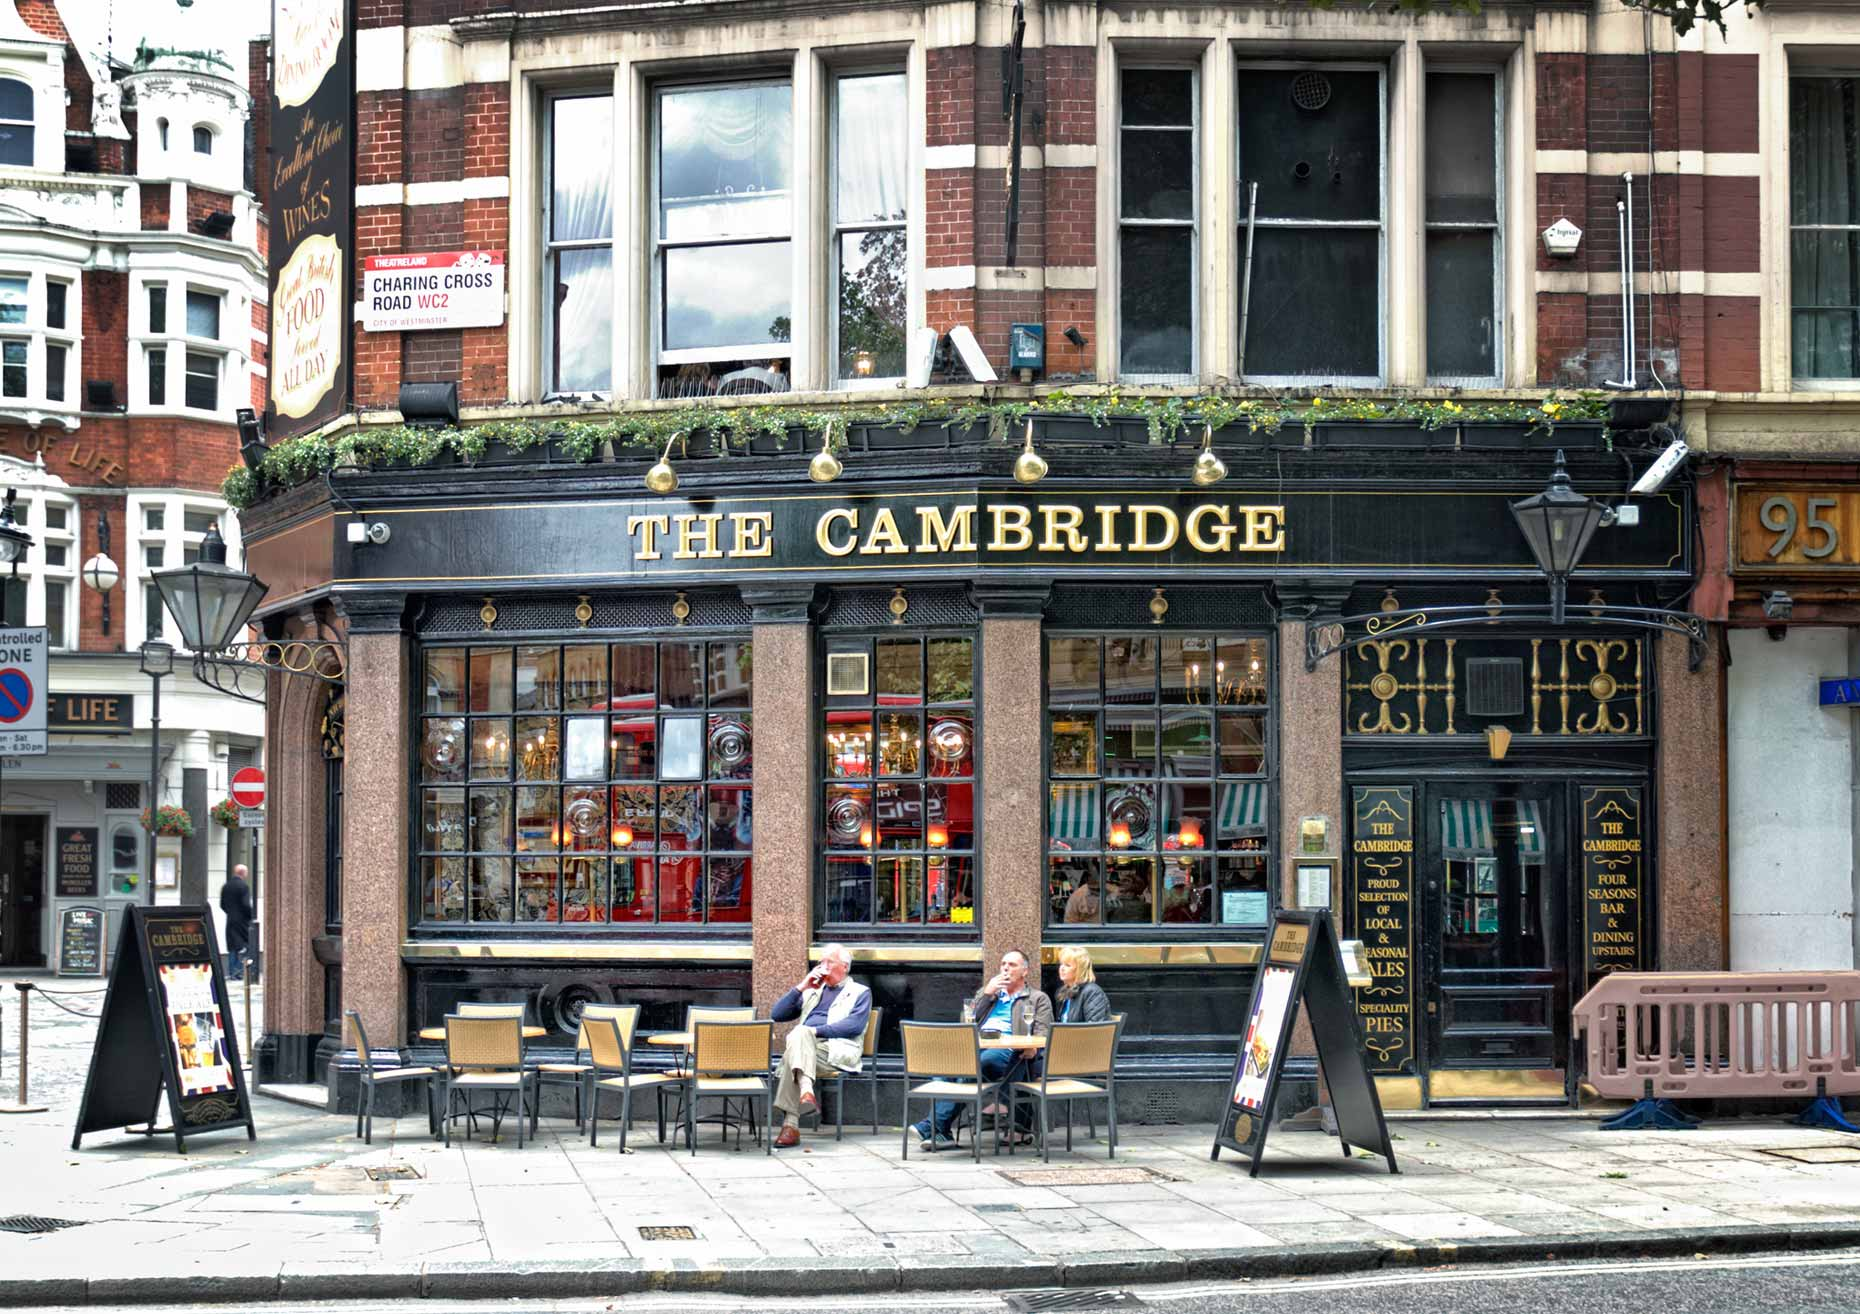 beeldbewerker-london-pub-cambridge-tjeerd-kruse-london pub-cambridge-beeldbewerking-vrij-werk